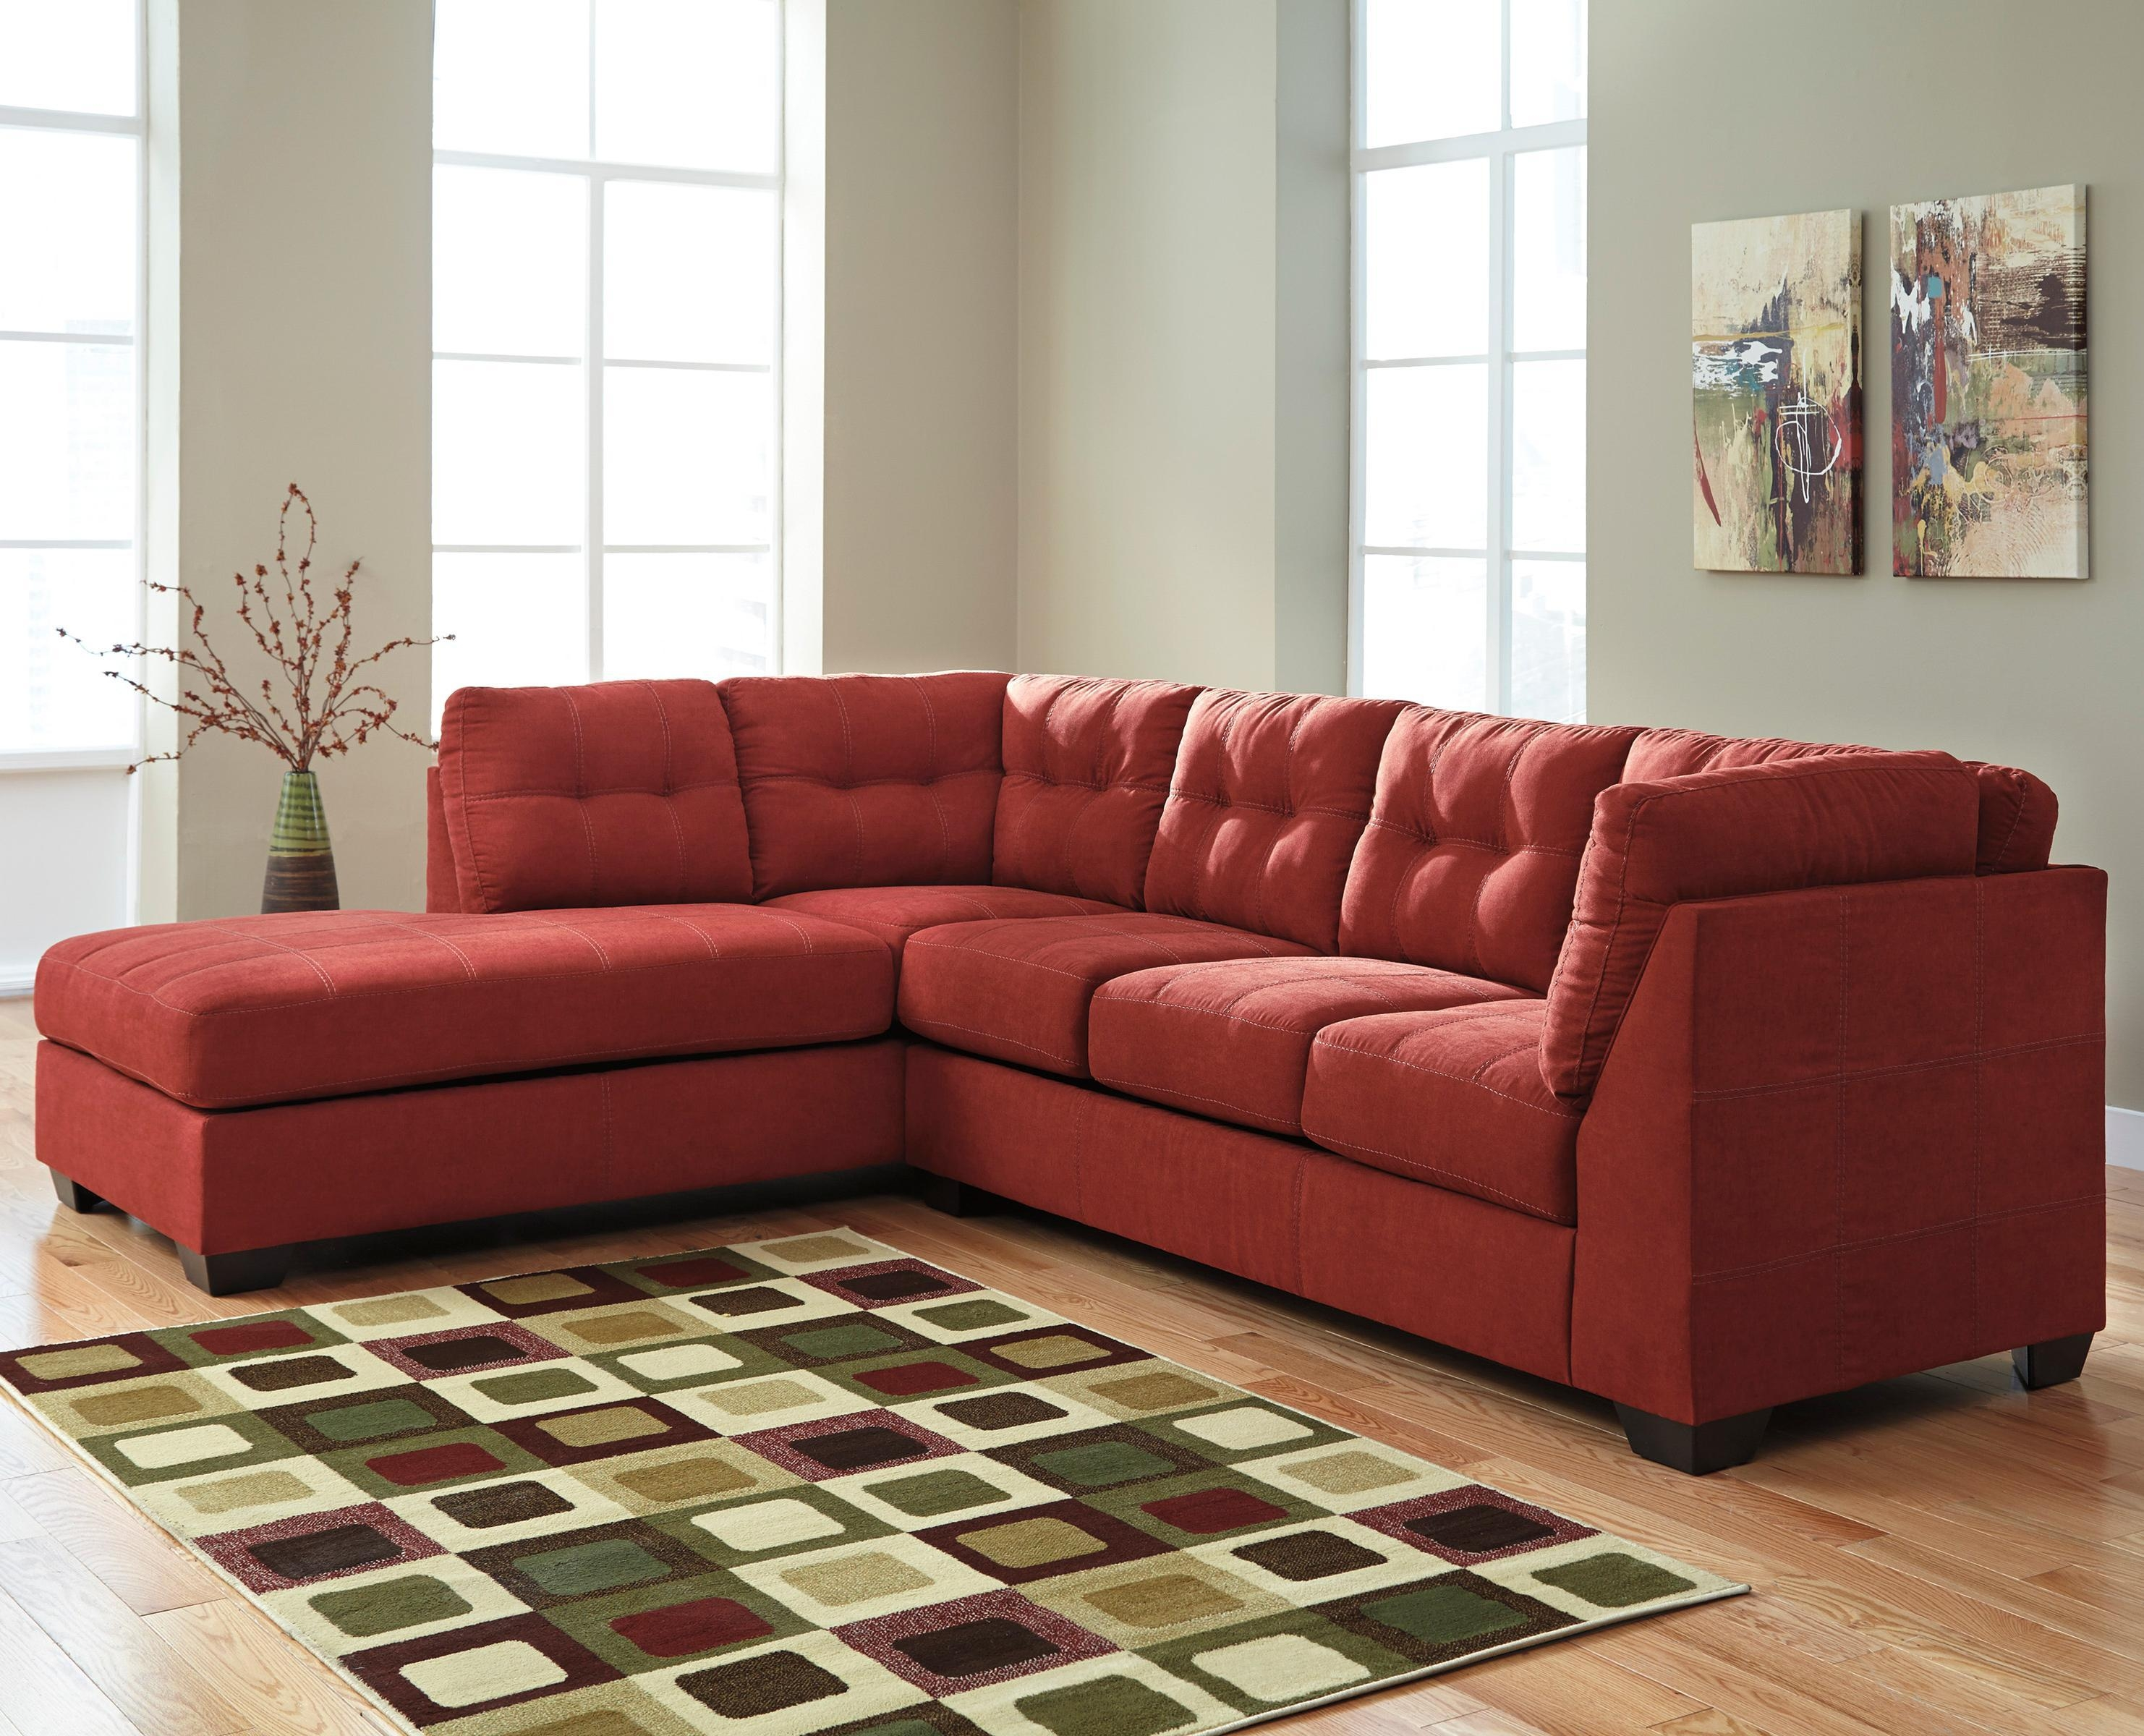 Benchcraft Maier – Sienna 2 Piece Sectional With Left Chaise With Regard To Sectional Sofa With 2 Chaises (Image 8 of 20)